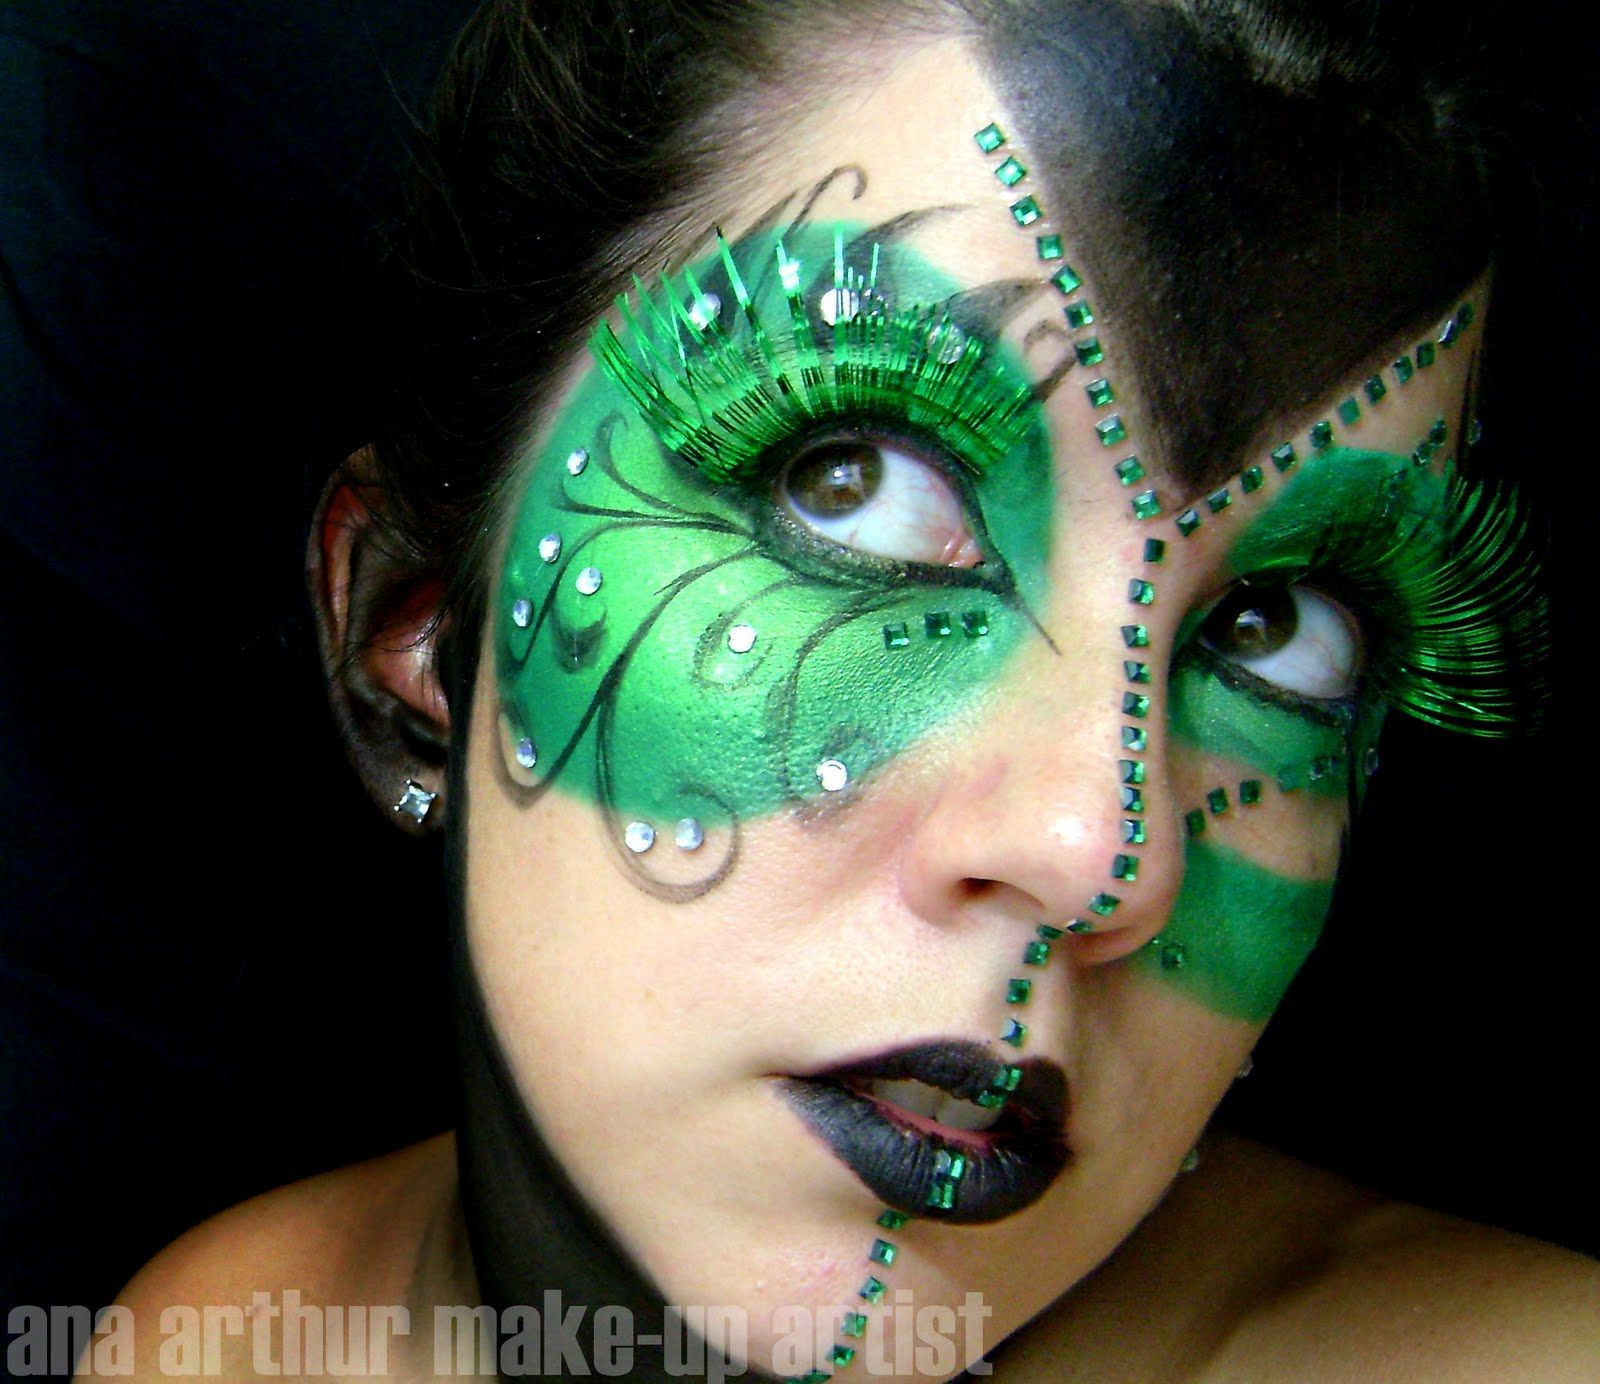 ana arthur makeup artist November 2009 Fantasy makeup